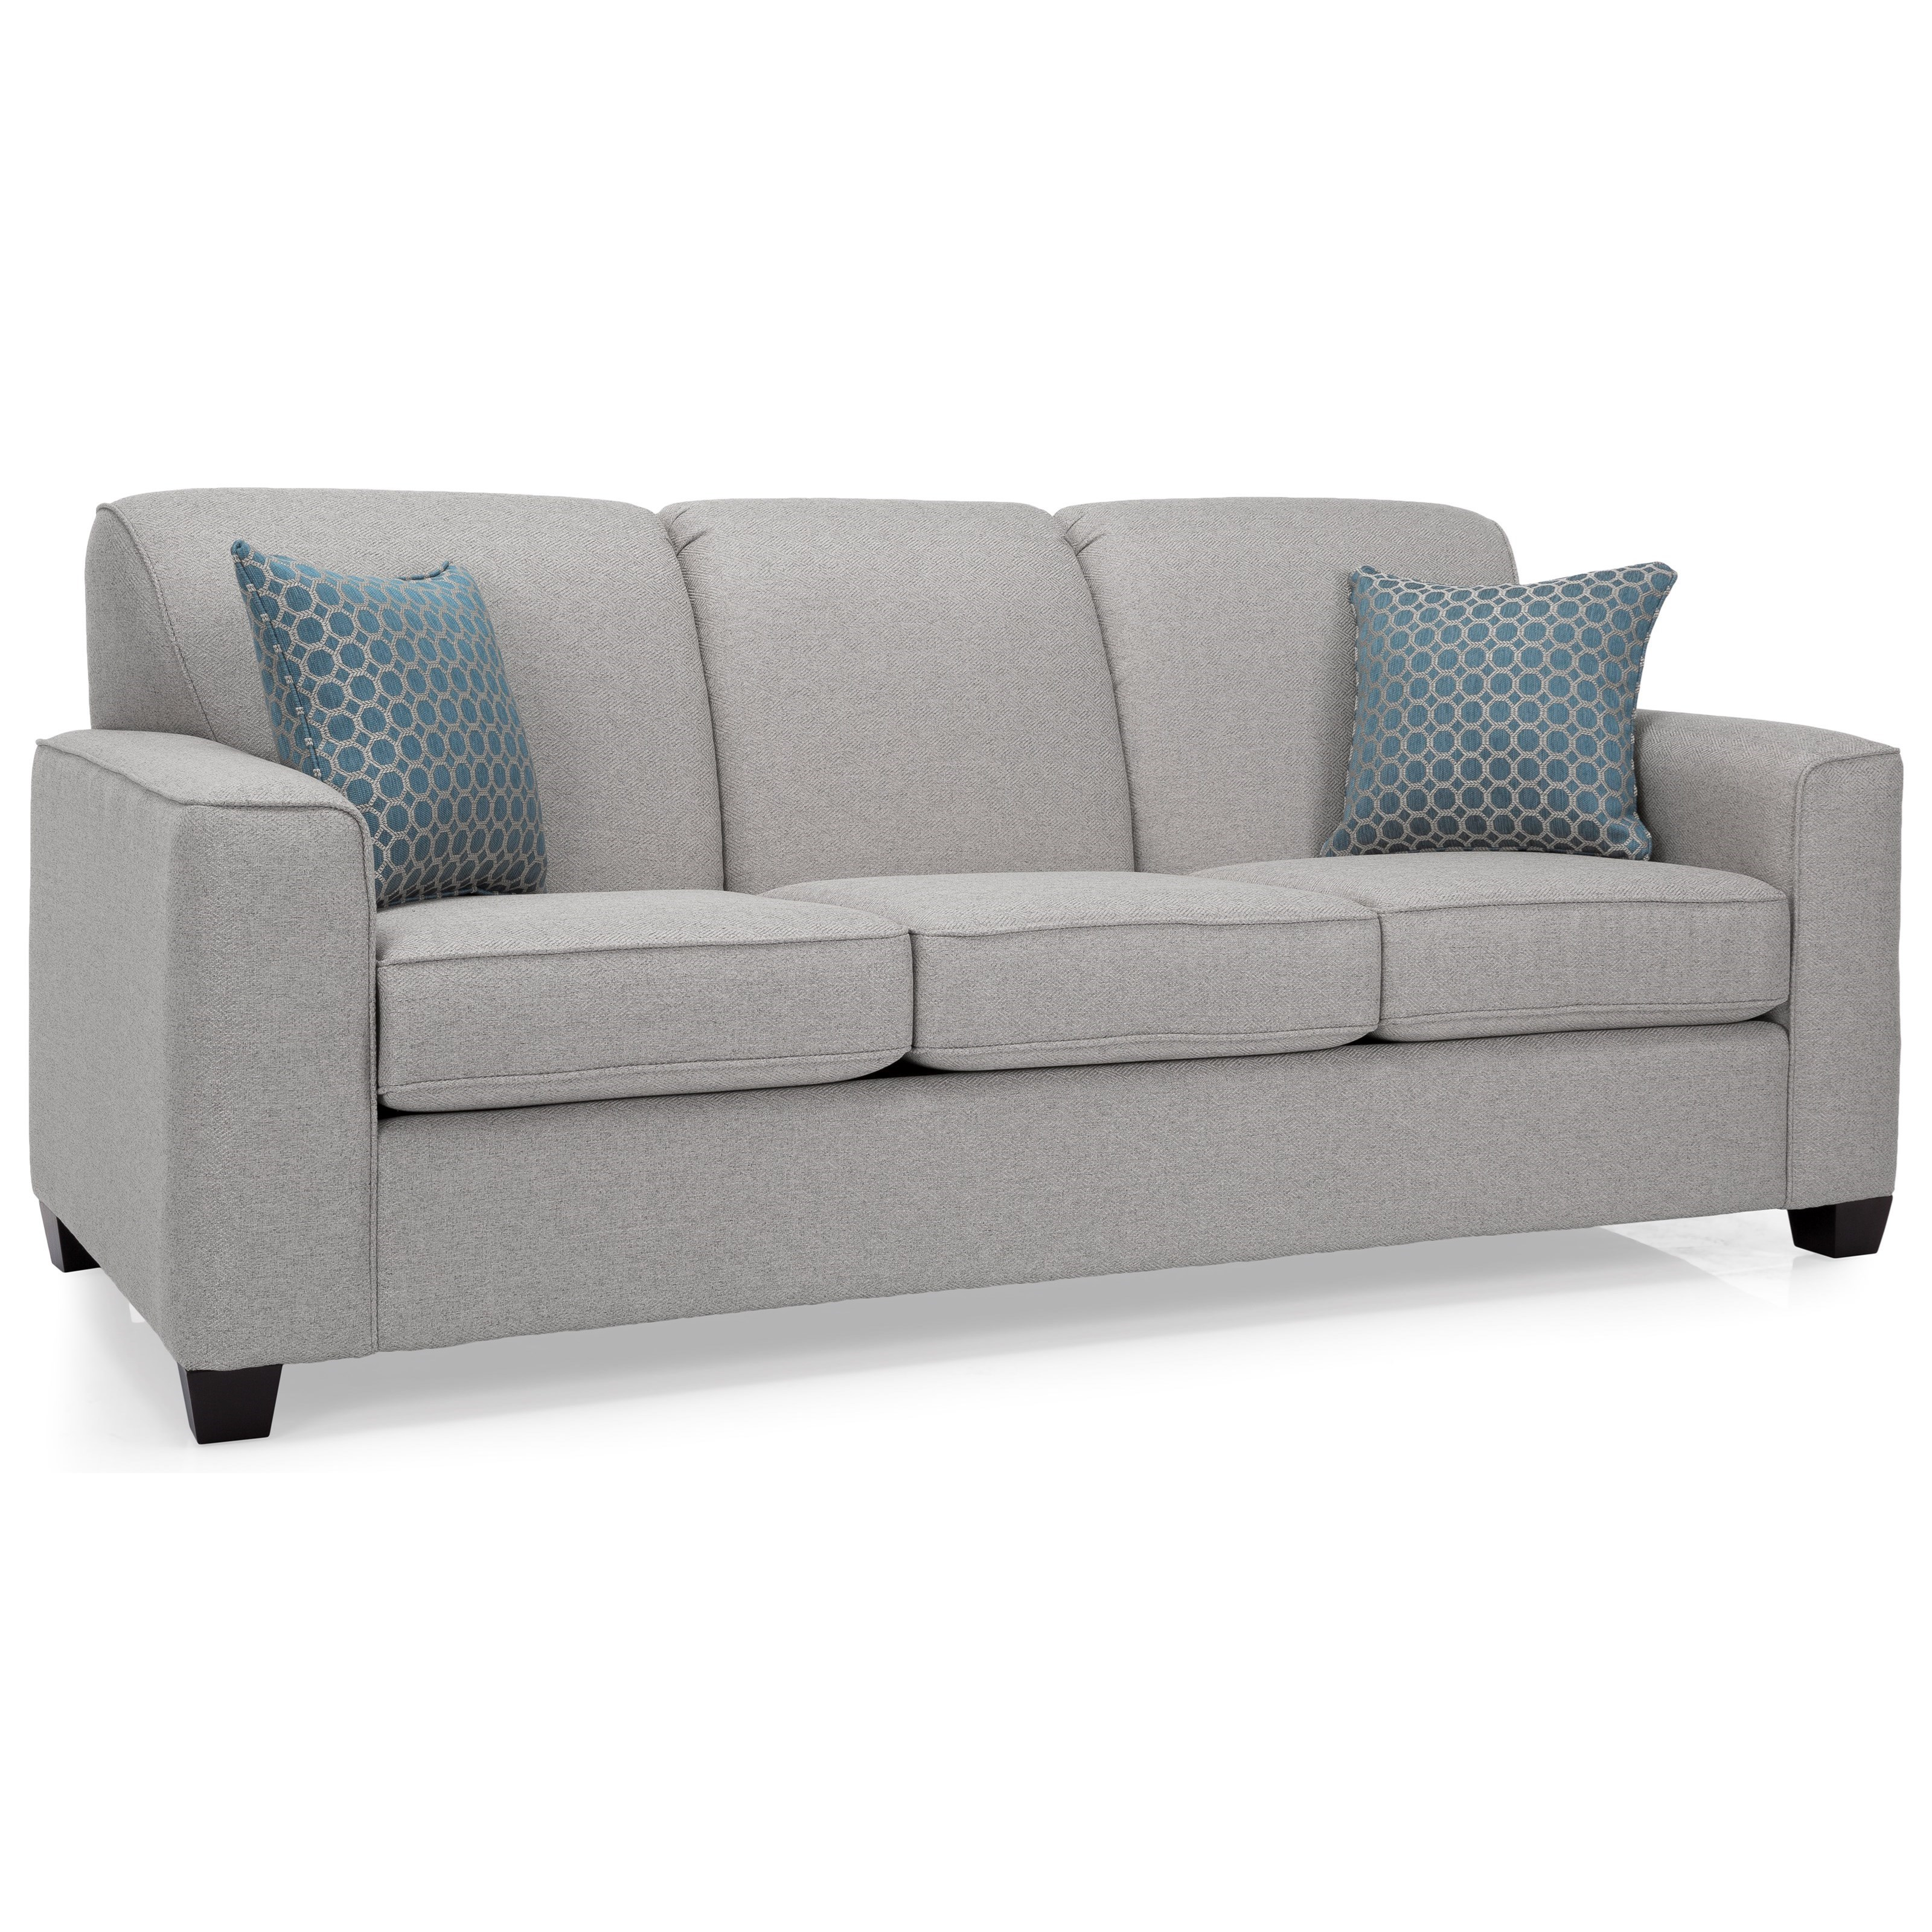 2705 Sofa by Decor-Rest at Steger's Furniture